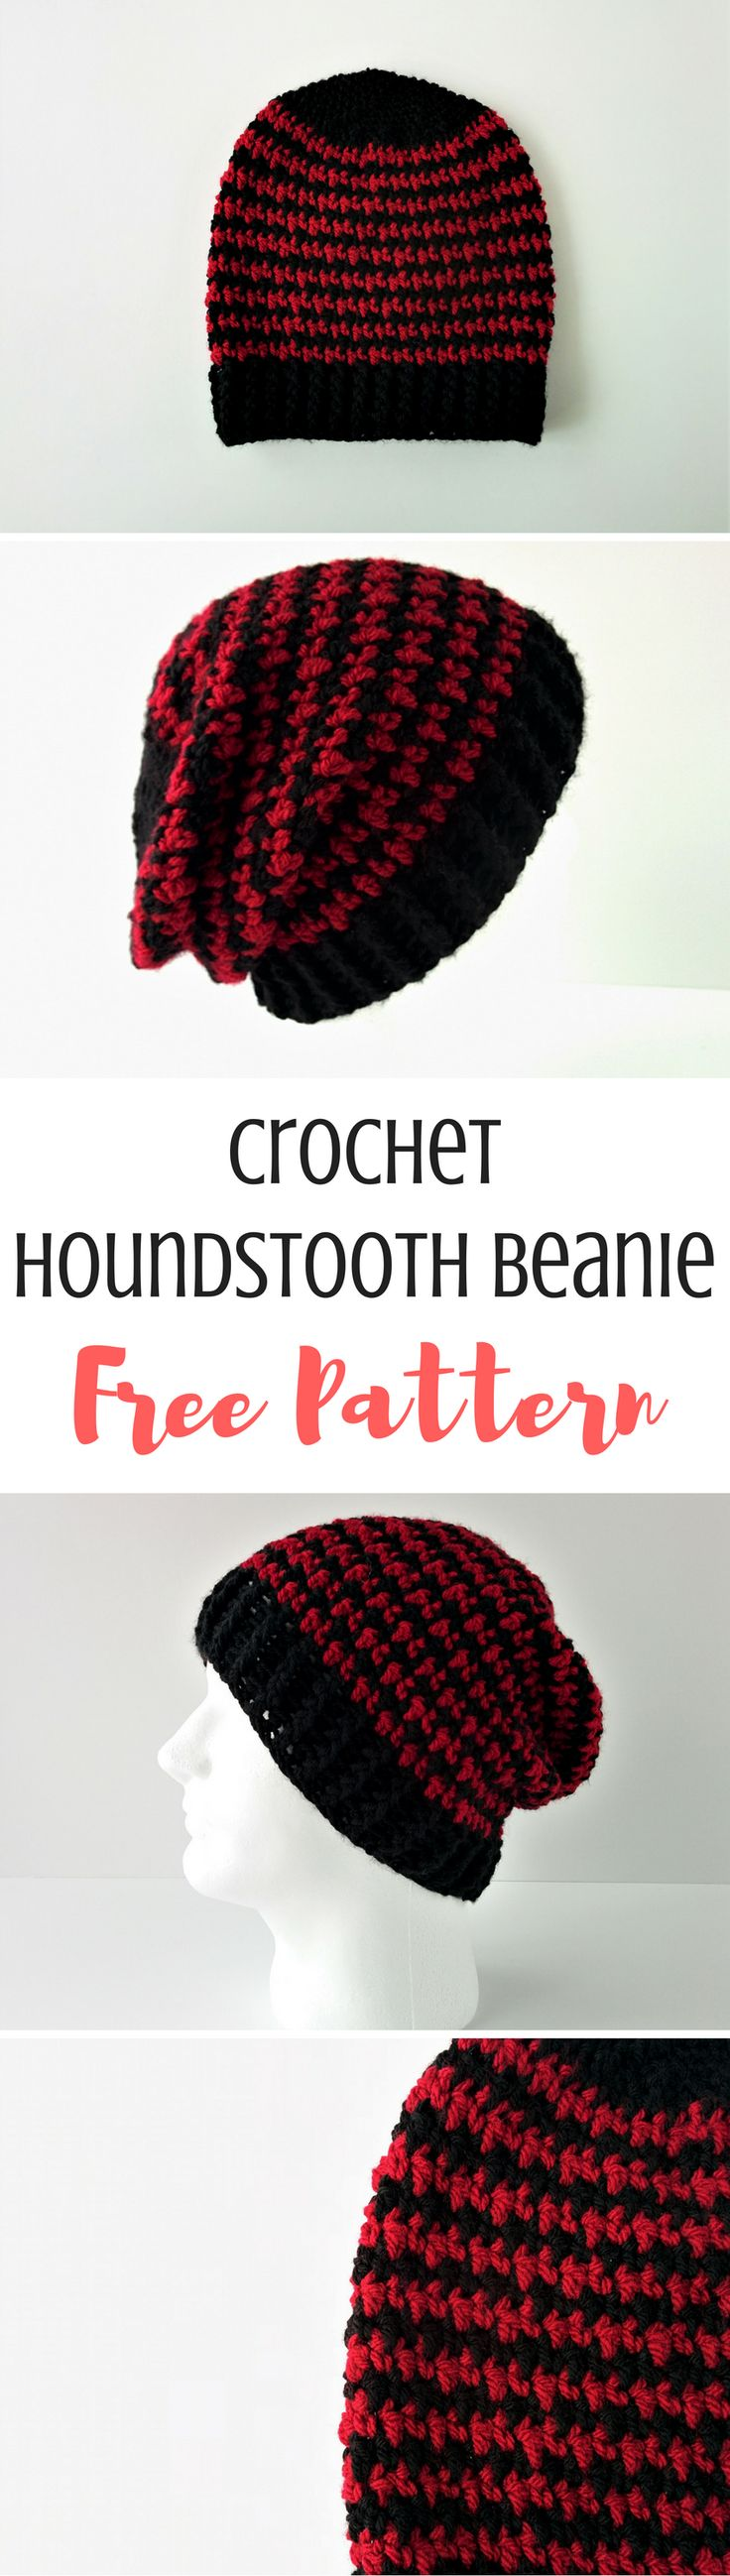 Classic, cosy and perfect for both men and women, this free houndstooth beanie pattern is a staple for Fall! Get the free pattern here